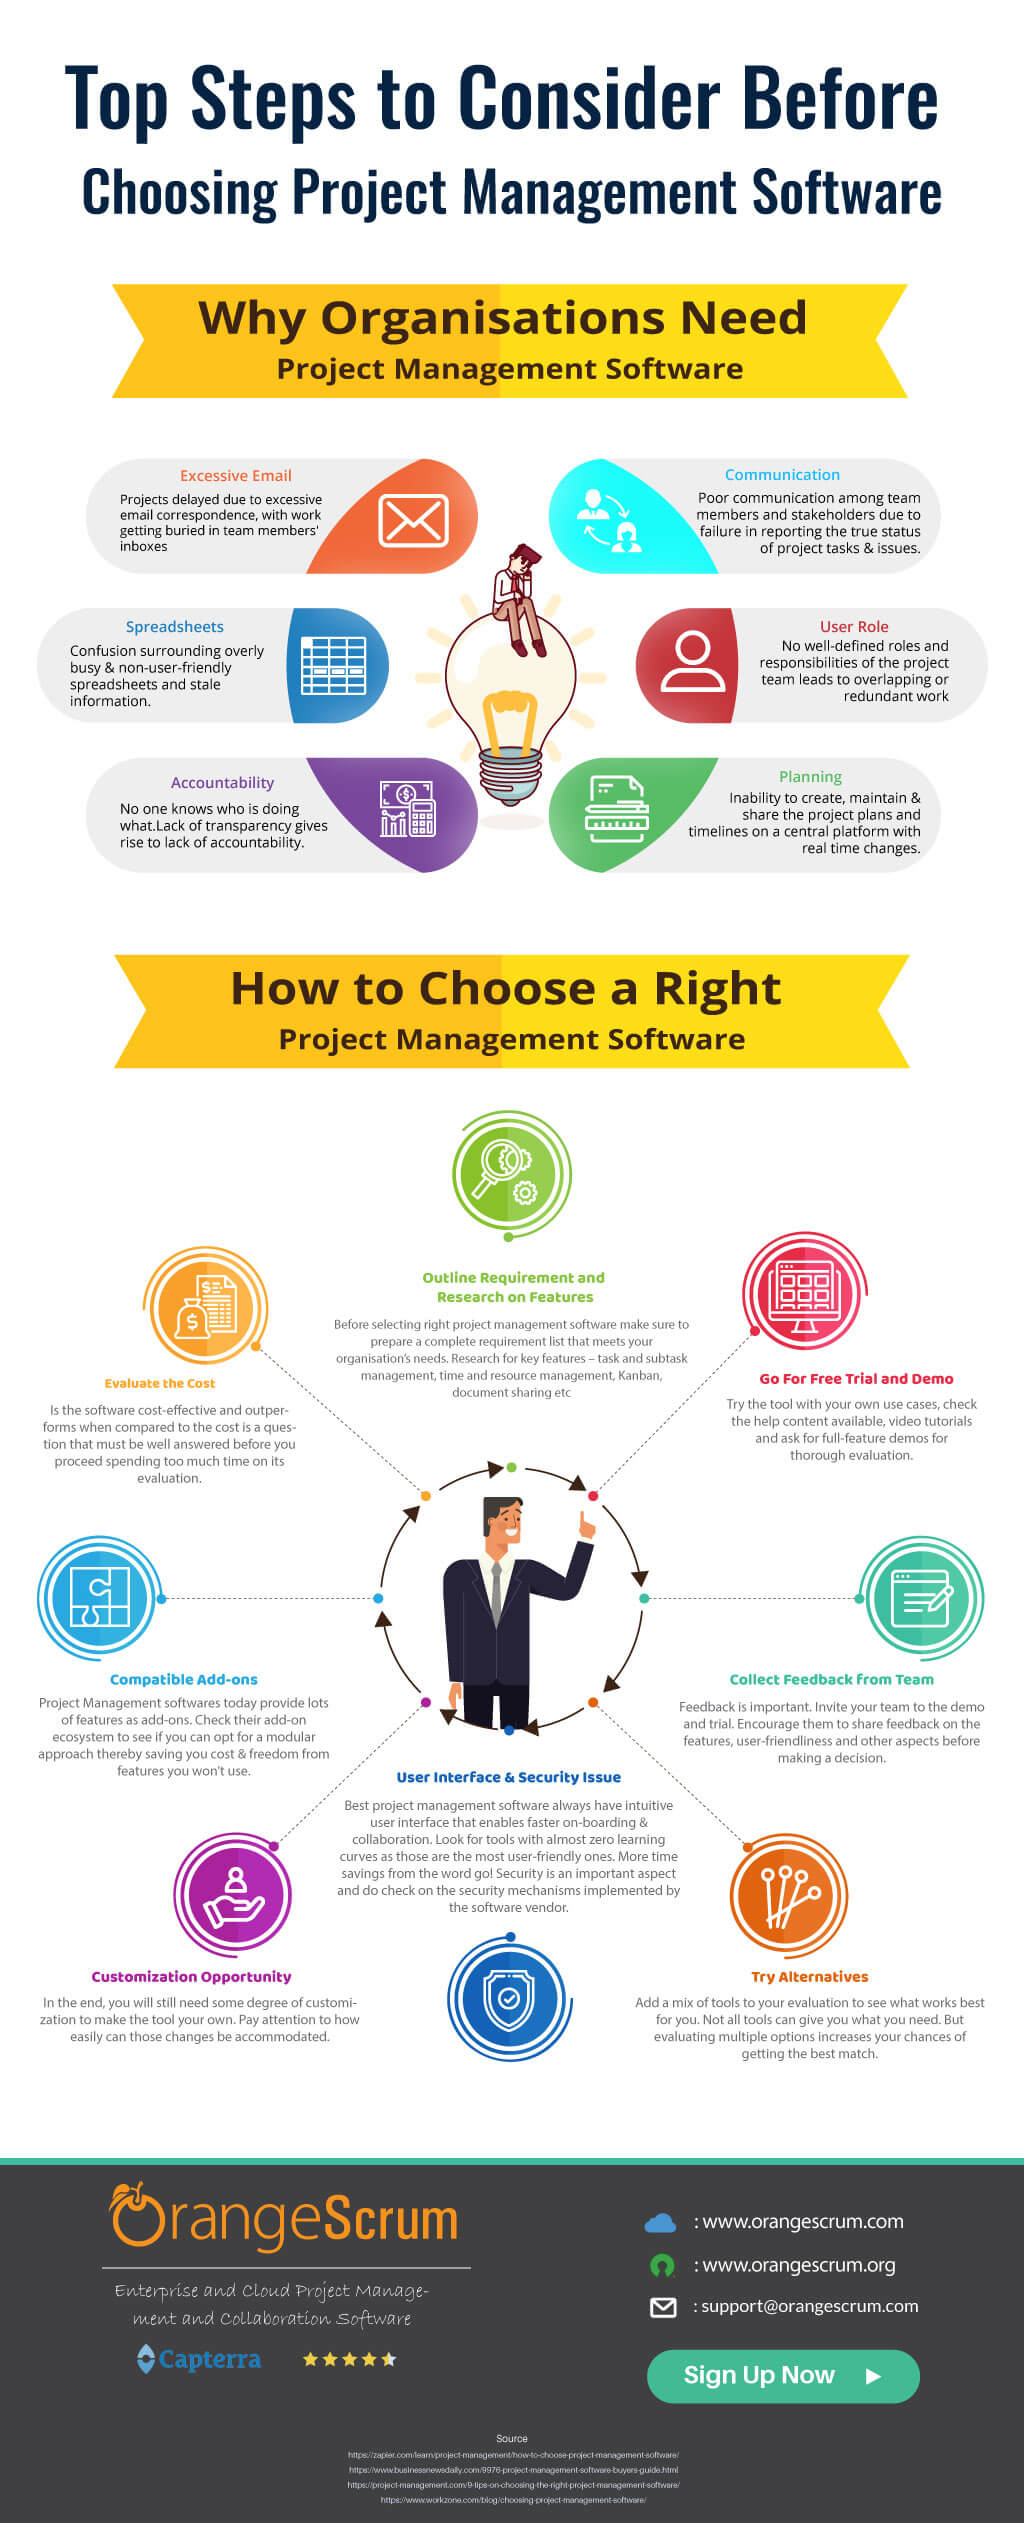 Top Steps to Consider Before Choosing Project Management Software